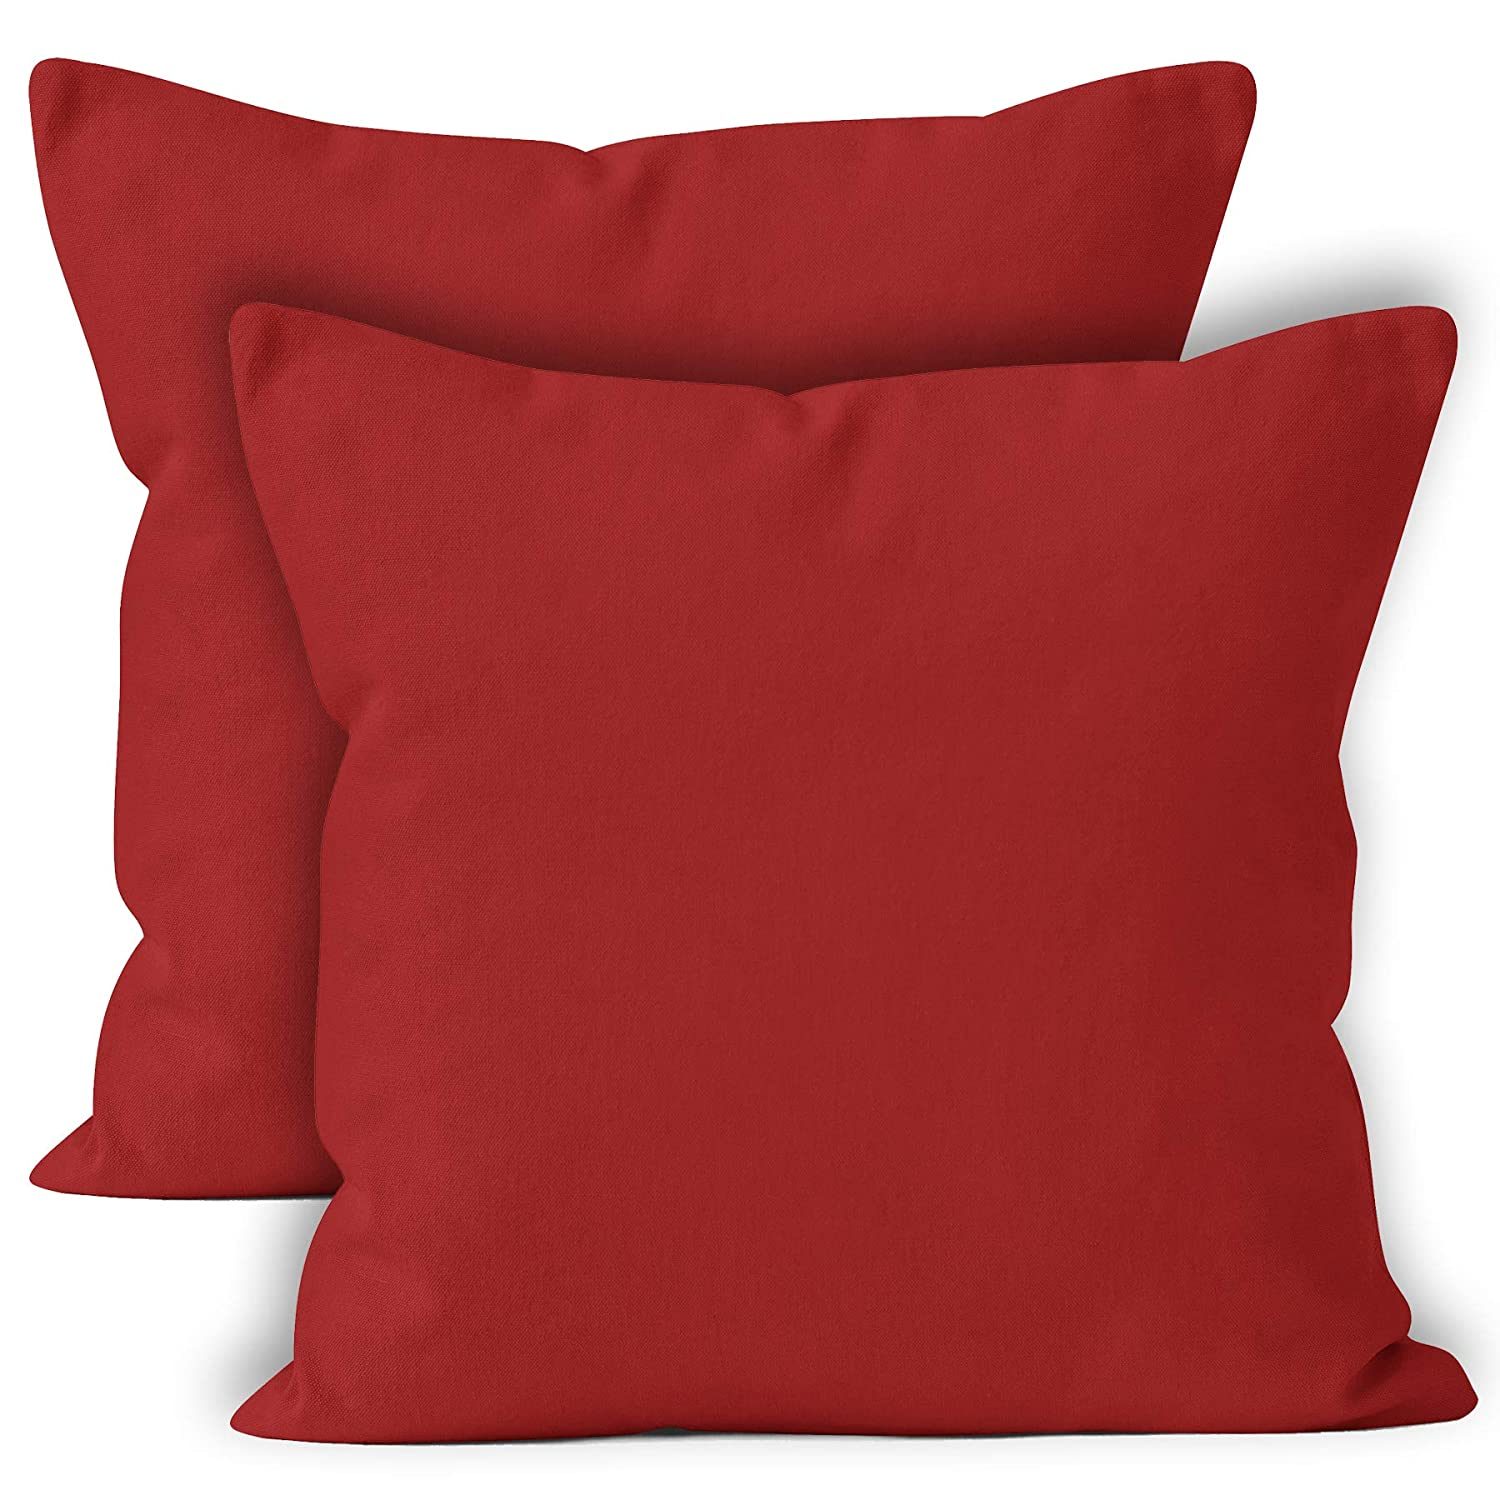 Encasa Homes Throw Cushion Cover 2pc Set - Deep Red - 18 x 18 inch Solid Dyed Cotton Canvas Square Accent Decorative Pillow Case for Couch Sofa Chair ...